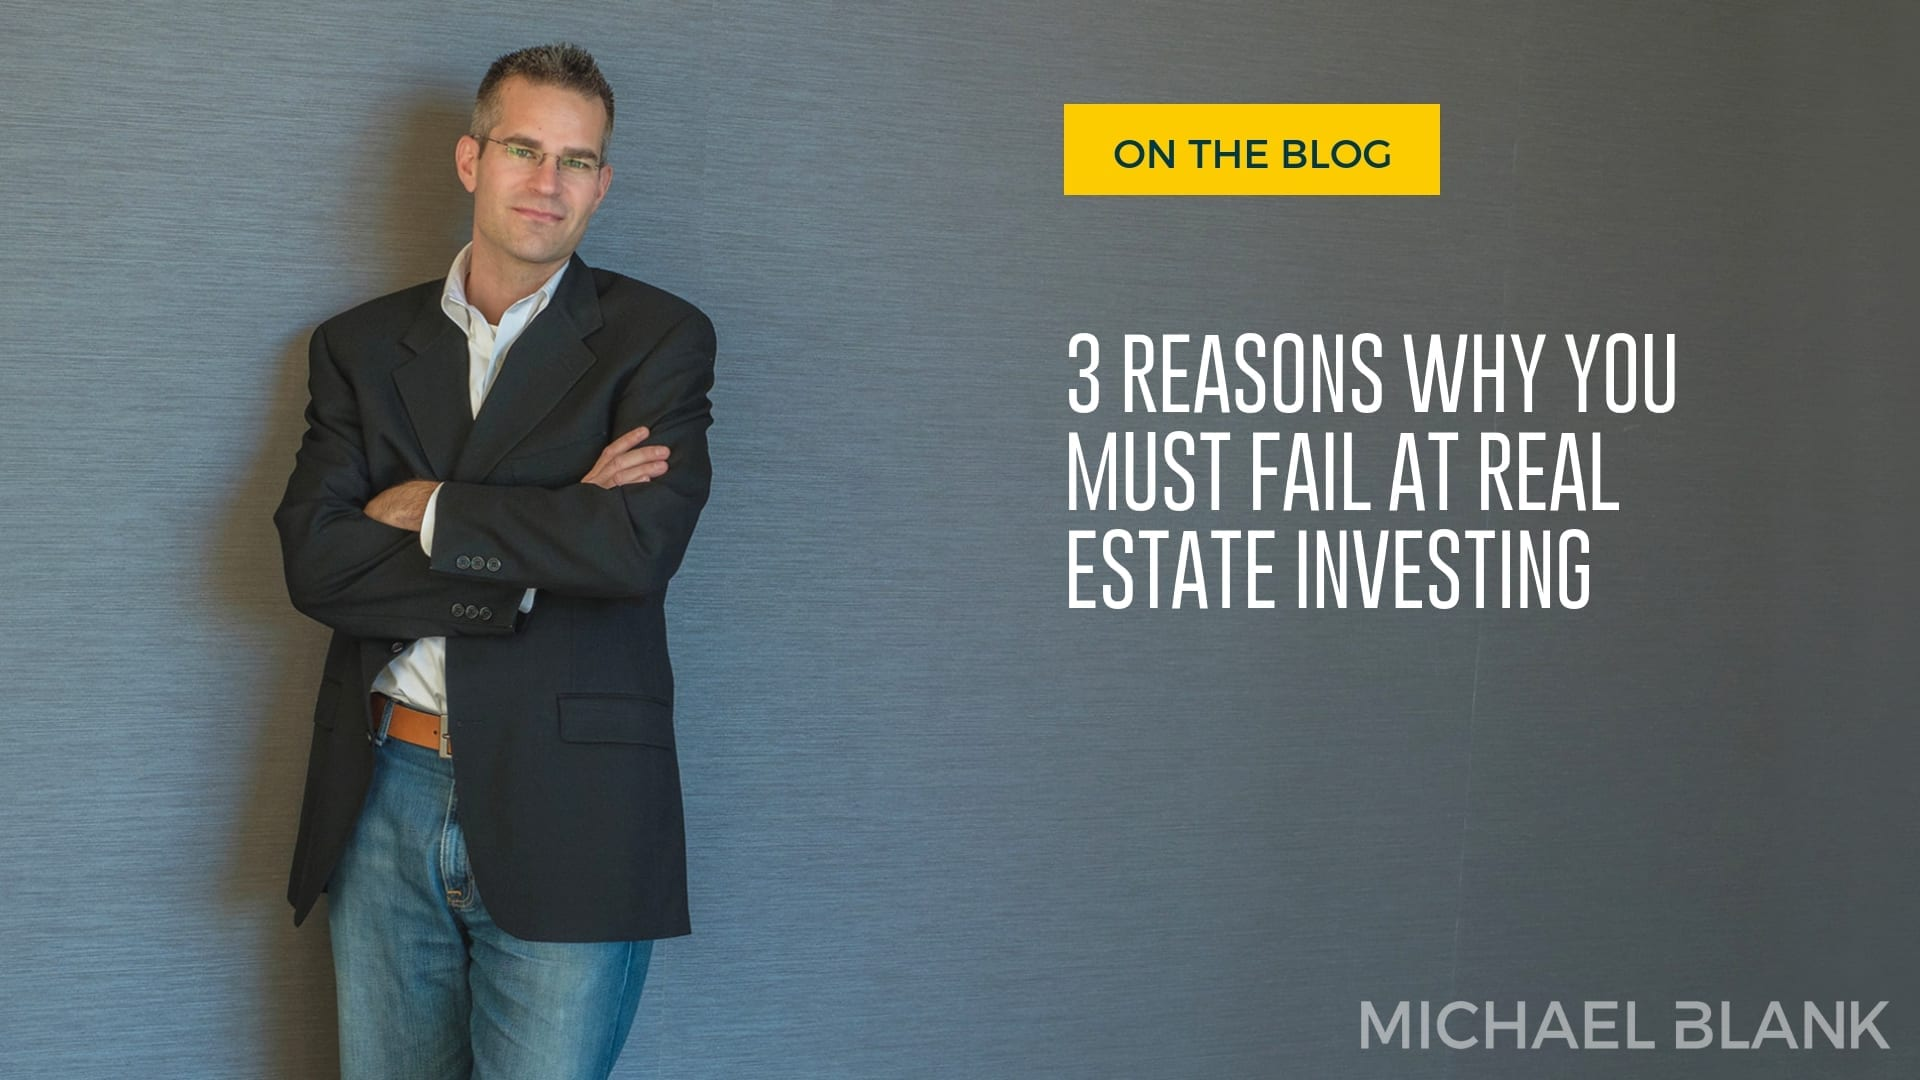 3 Reasons Why You MUST Fail At Real Estate Investing